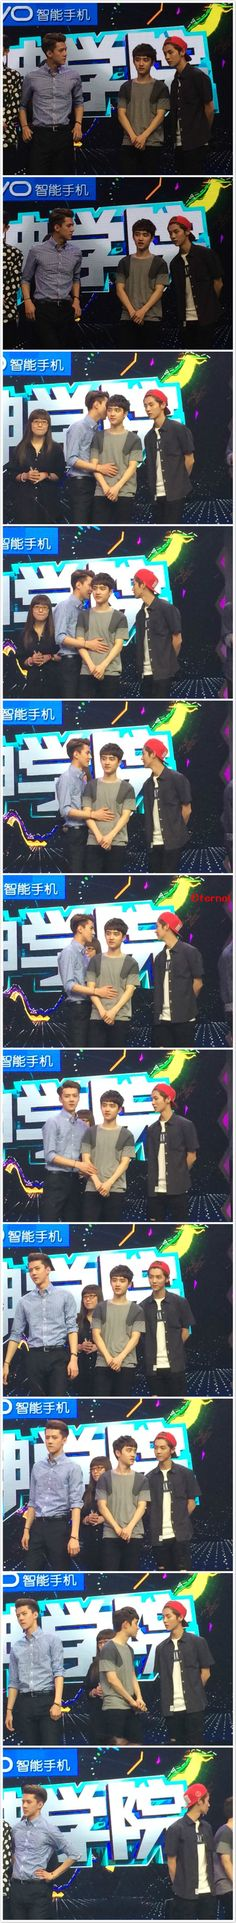 140611 EXO @ Happy Camp - Sehun & Luhan moments #HunHan ♥